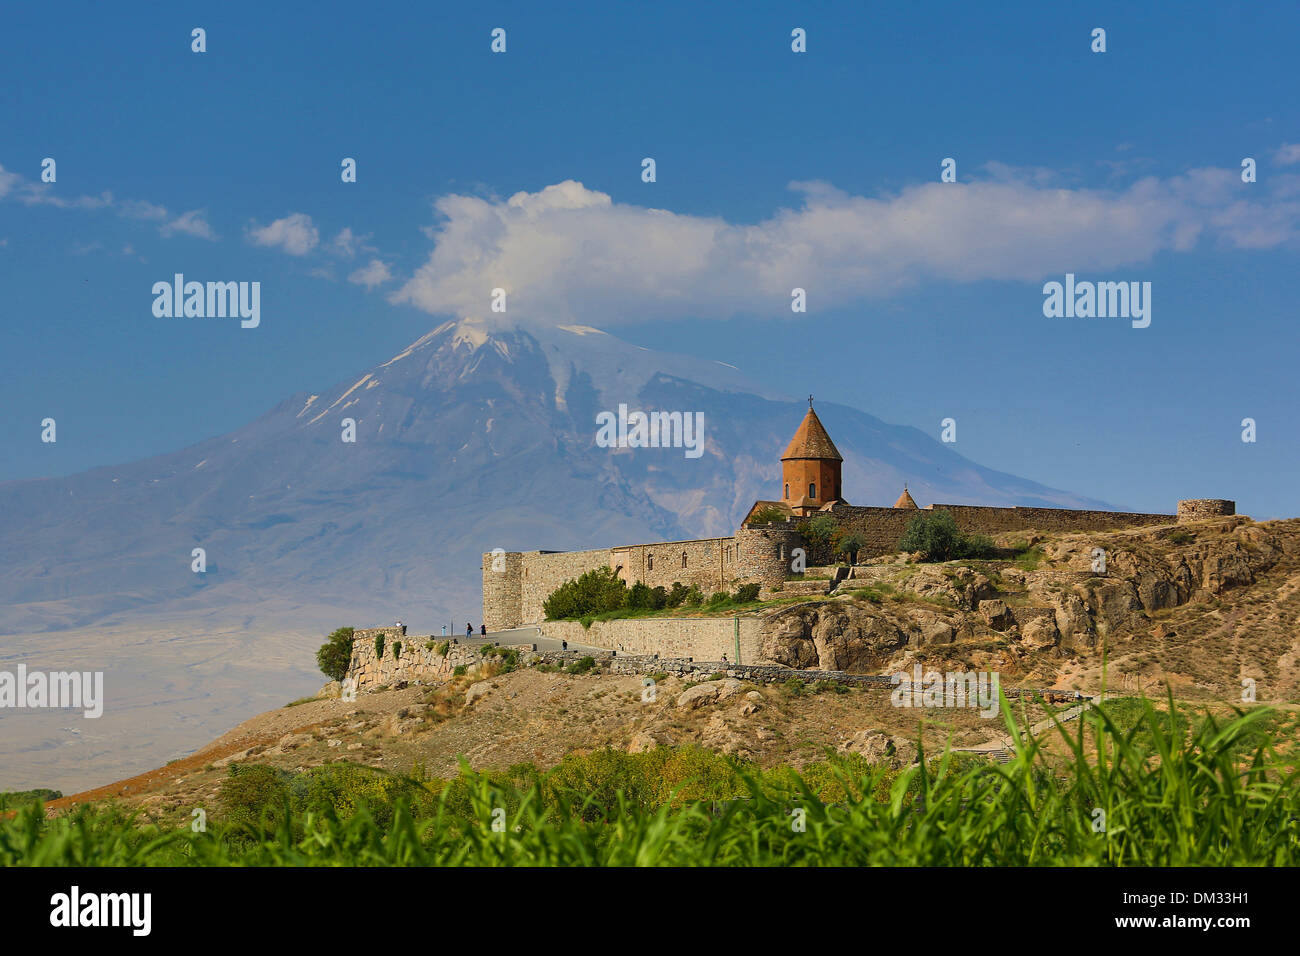 Armenia South Caucasus Caucasus Eurasia Khor Virap Lusarat Noe Ararat mountain architecture church history historical - Stock Image